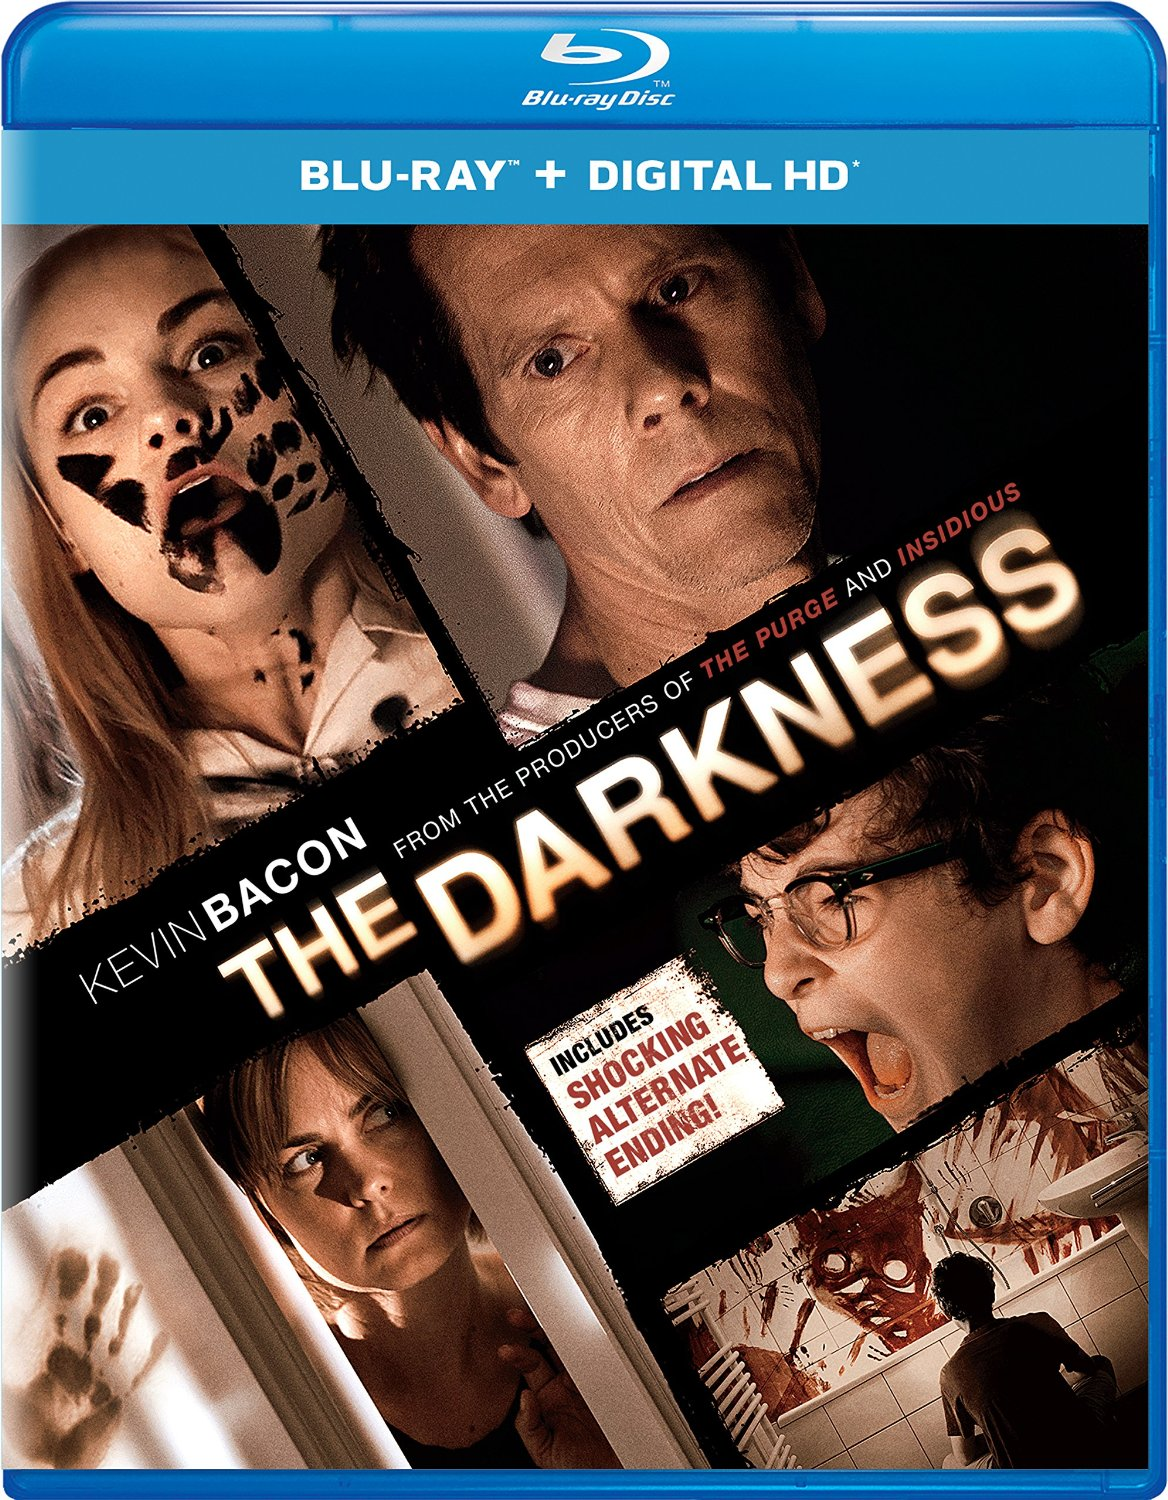 Greg McLean's The Darkness - Blu-ray review